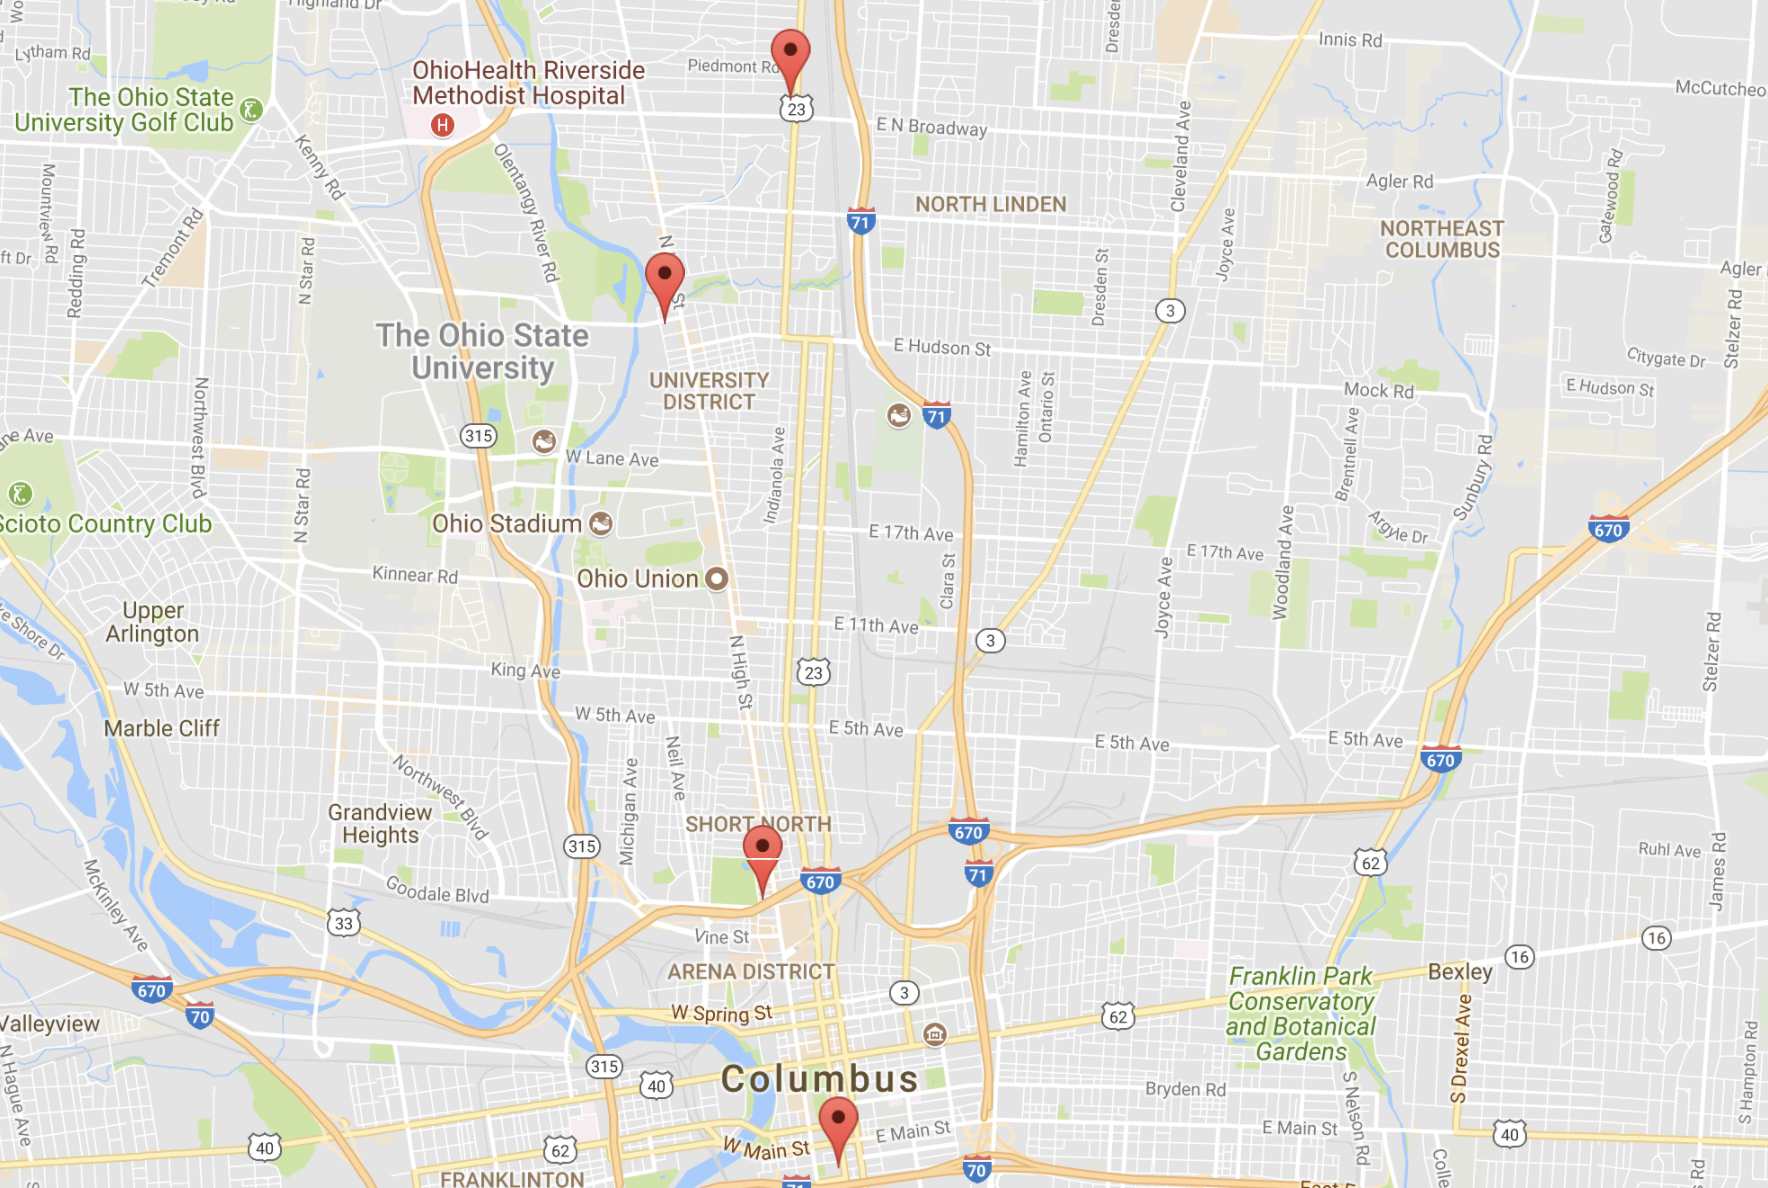 Map of Apartments in Columbus, Ohio